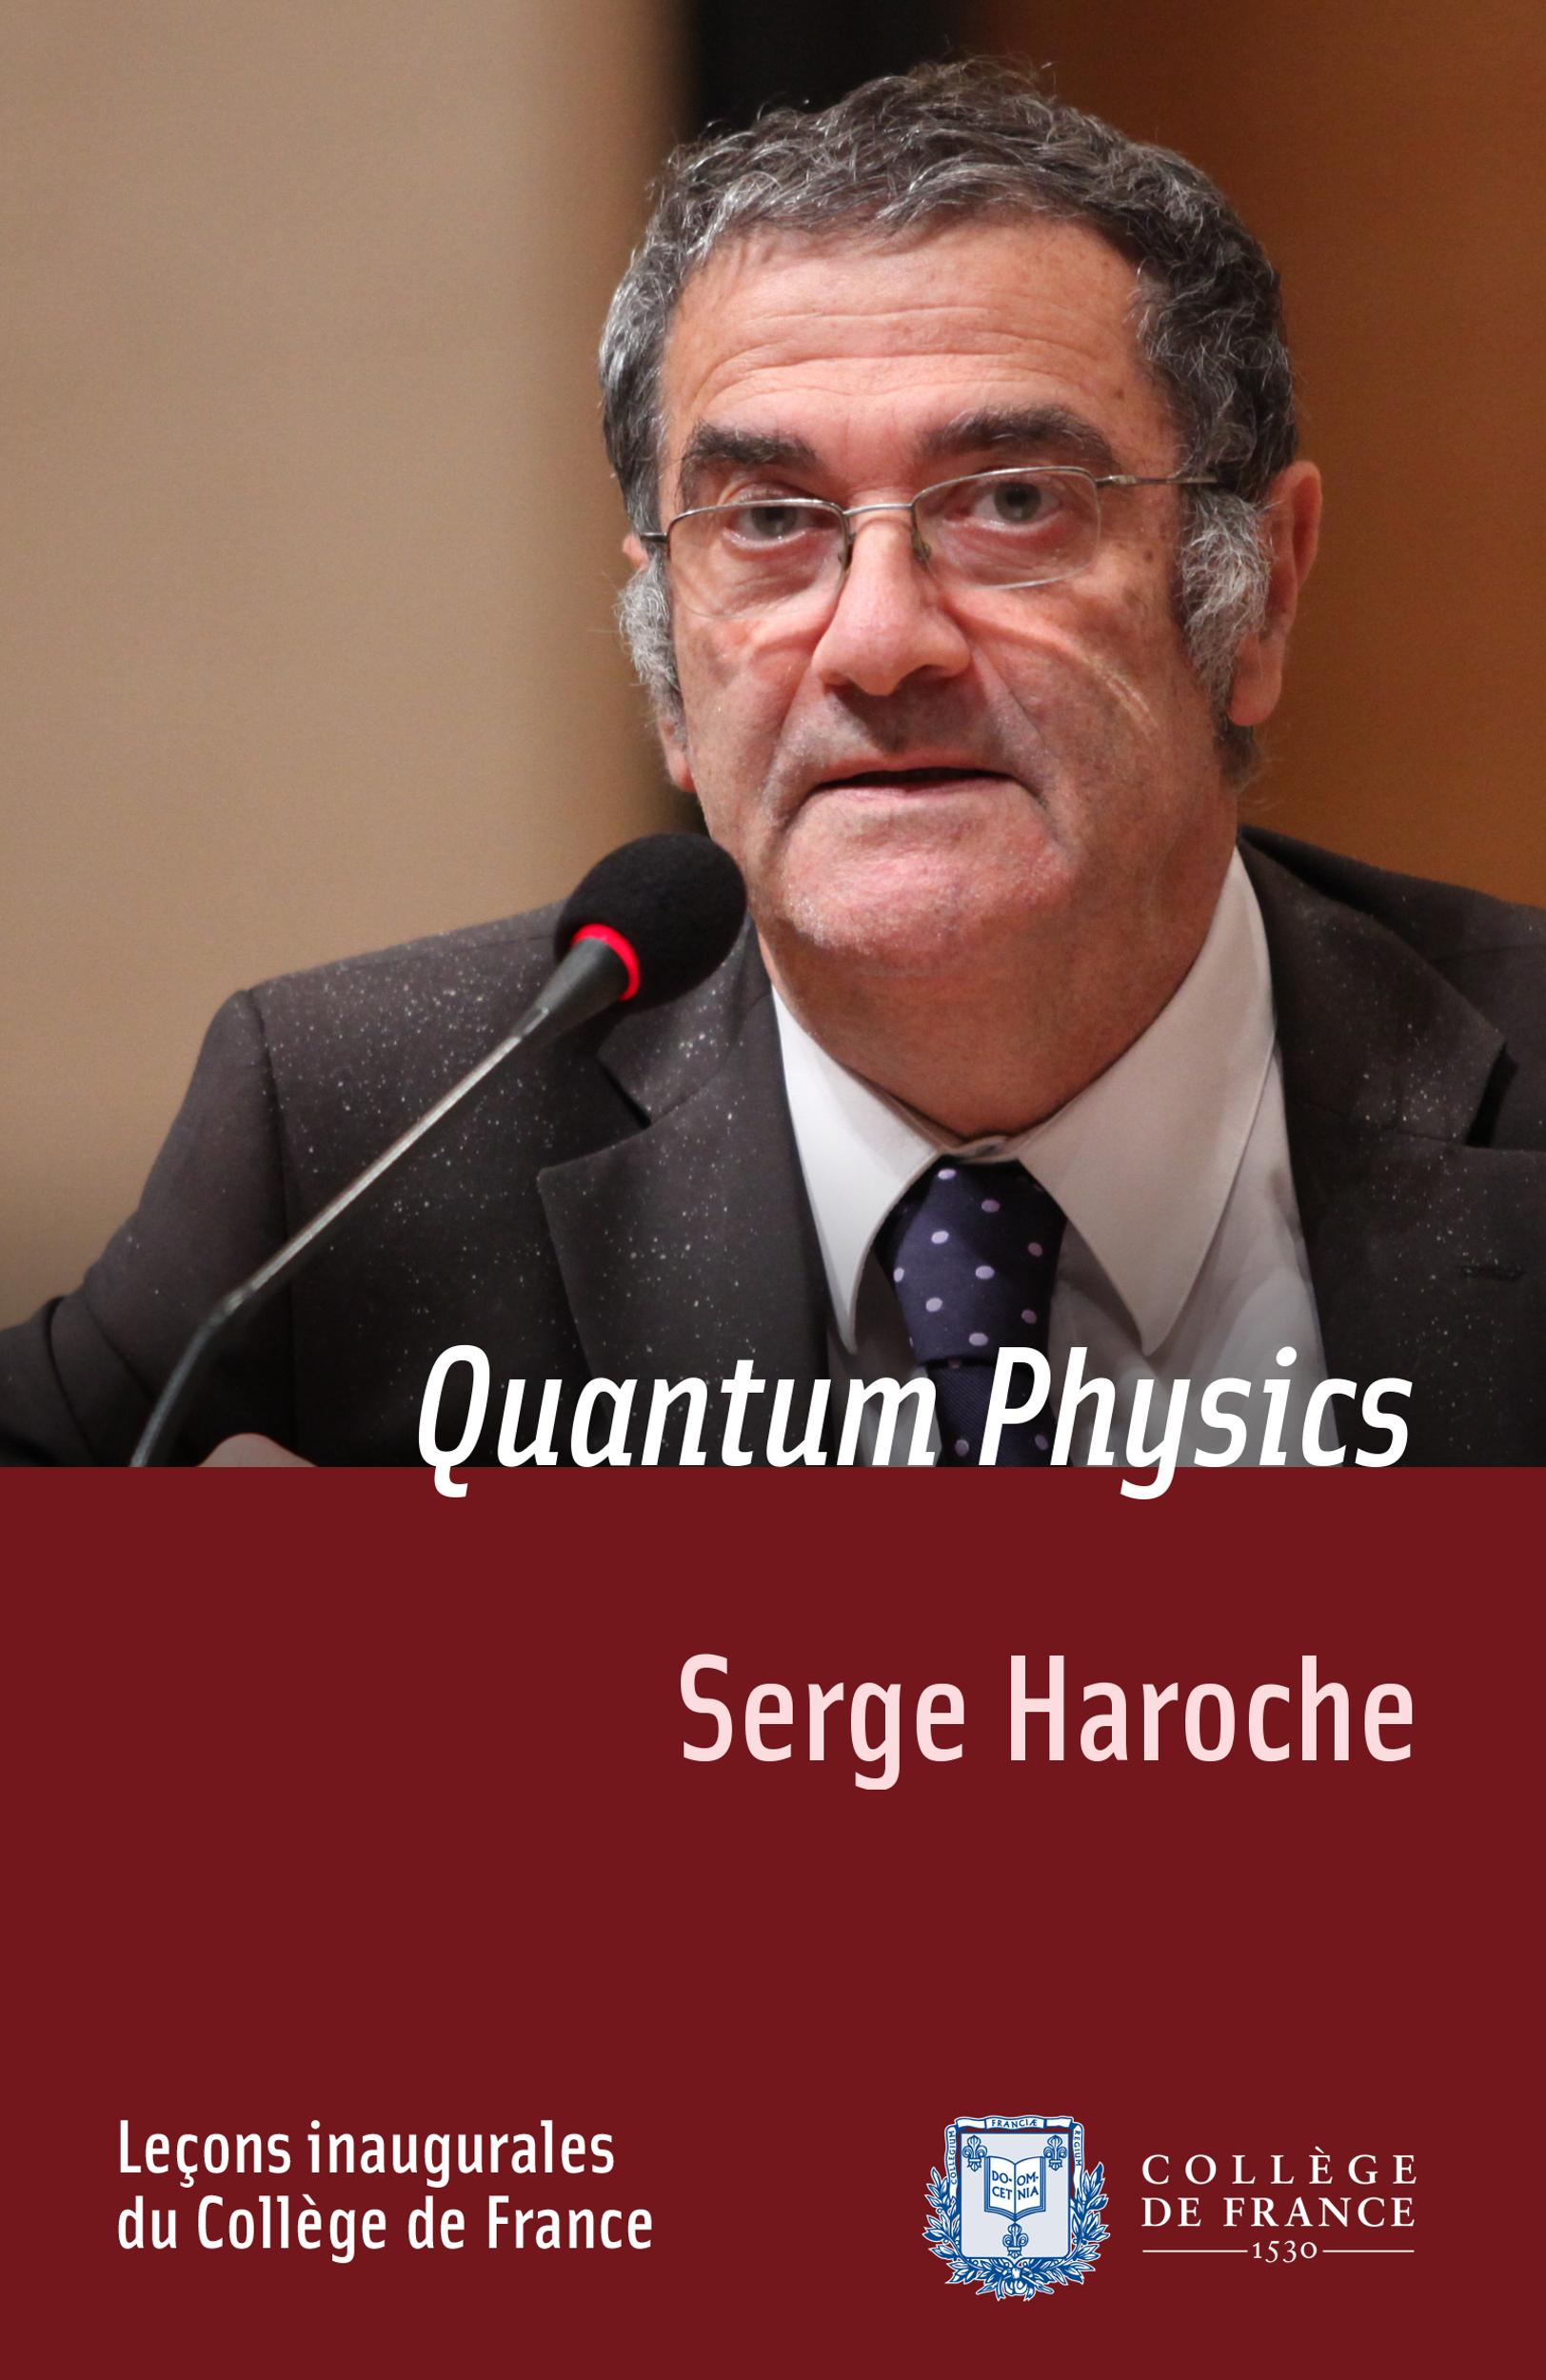 Quantum Physics, INAUGURAL LECTURE DELIVERED ON THURSDAY 13 DECEMBER 2001